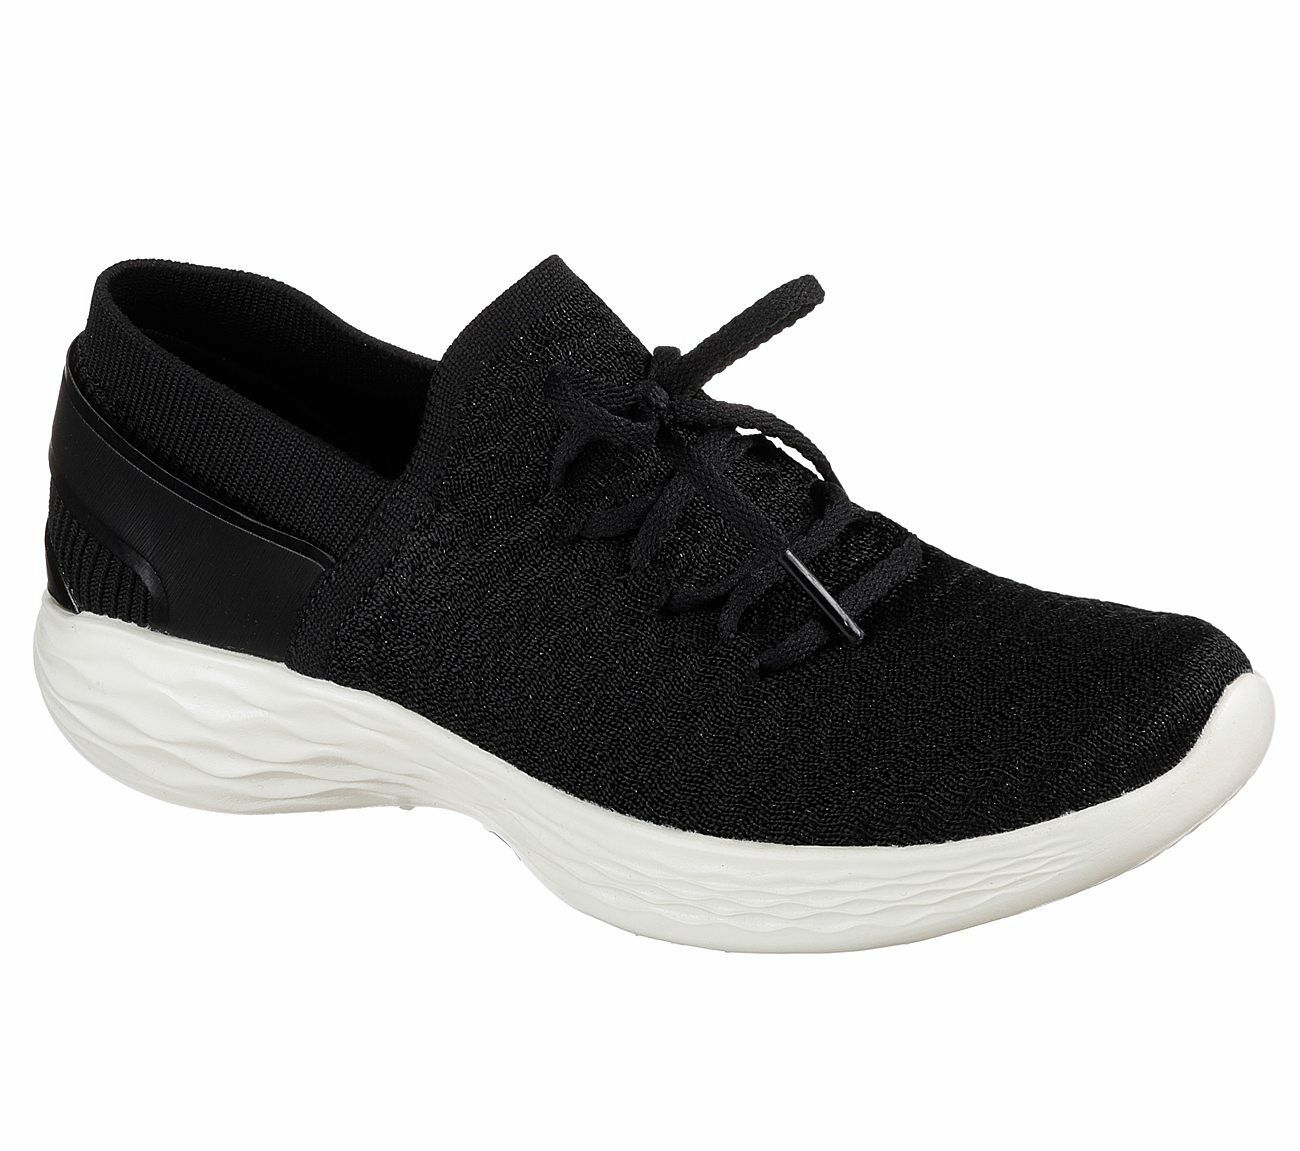 NEU SKECHERS Damen Sneakers Turnschuhe Walking YOU yvxB5